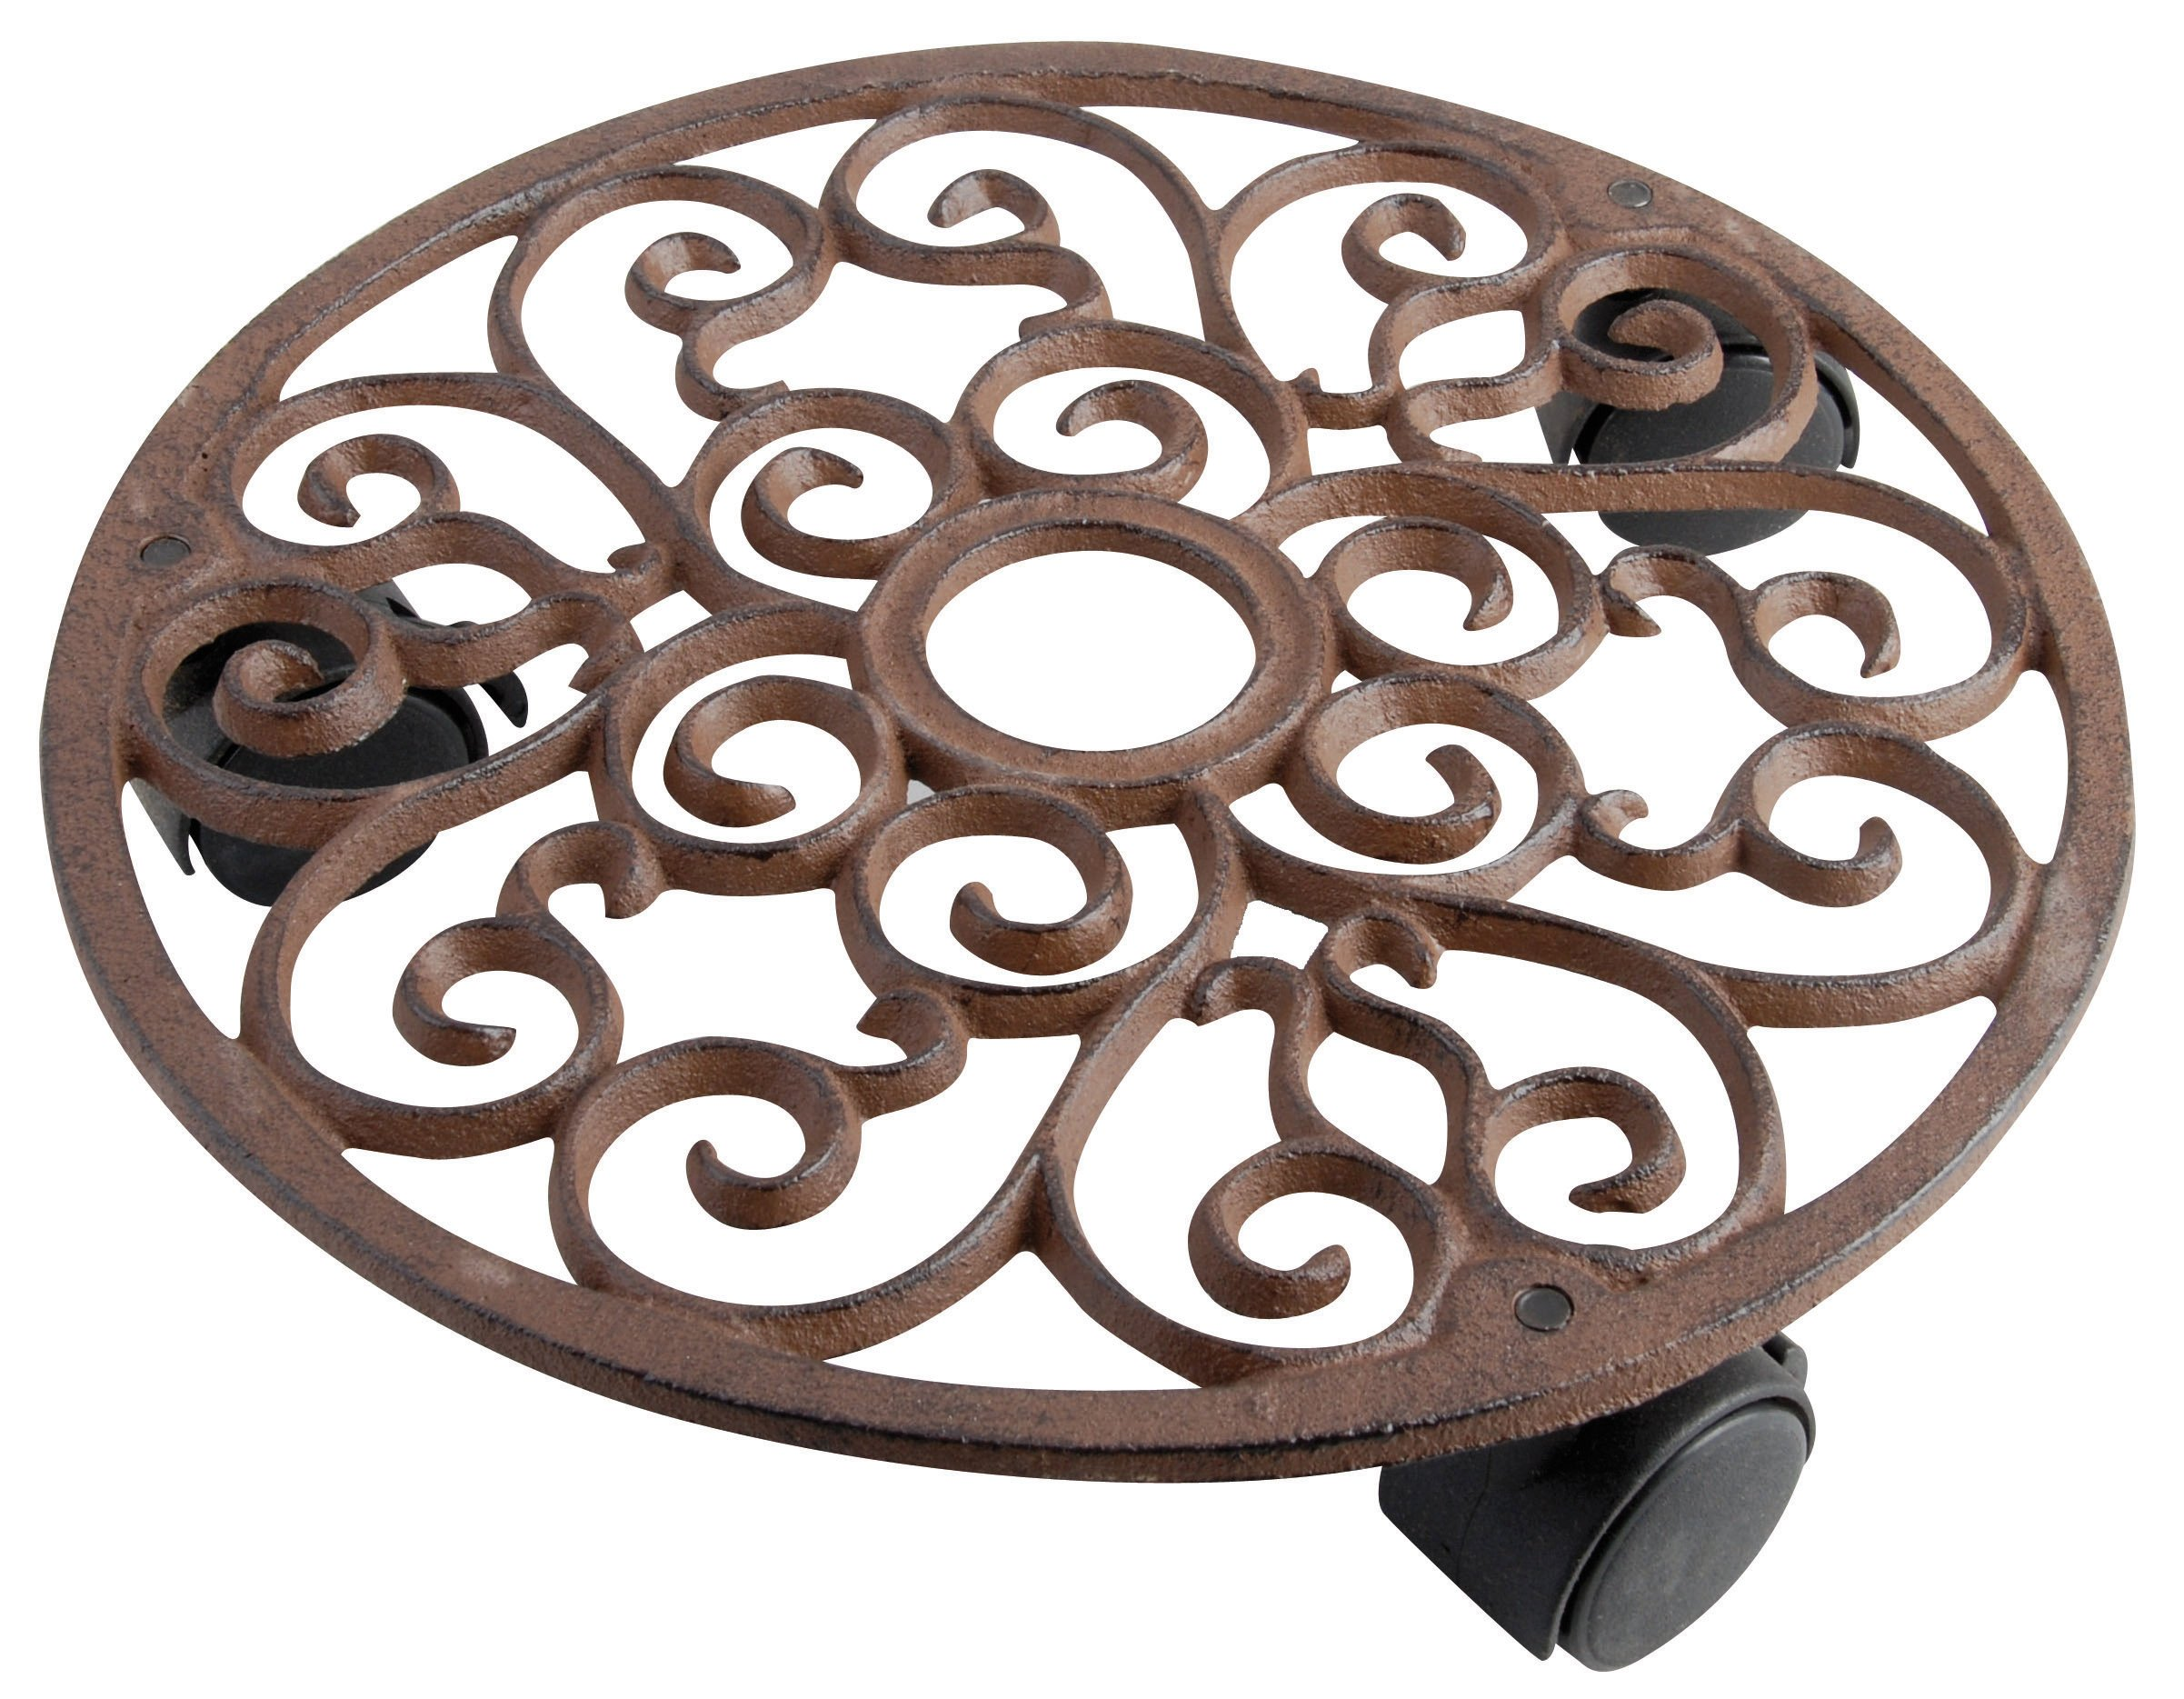 Esschert Design Plant Trolley - Round Cast Iron by Esschert Design